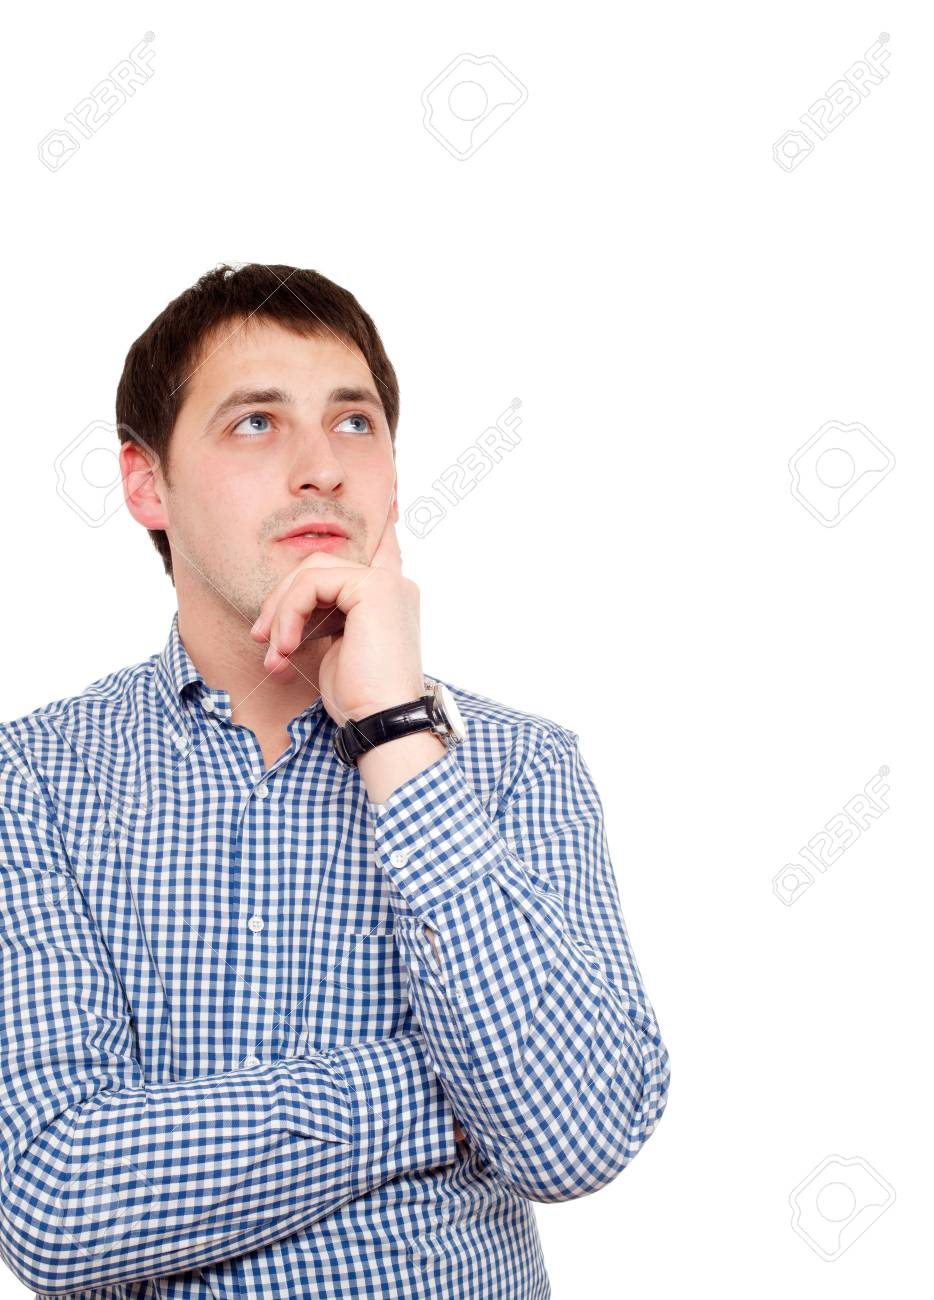 Young man in thoughtful pose. Isolated over white. Stock Photo - 8997673